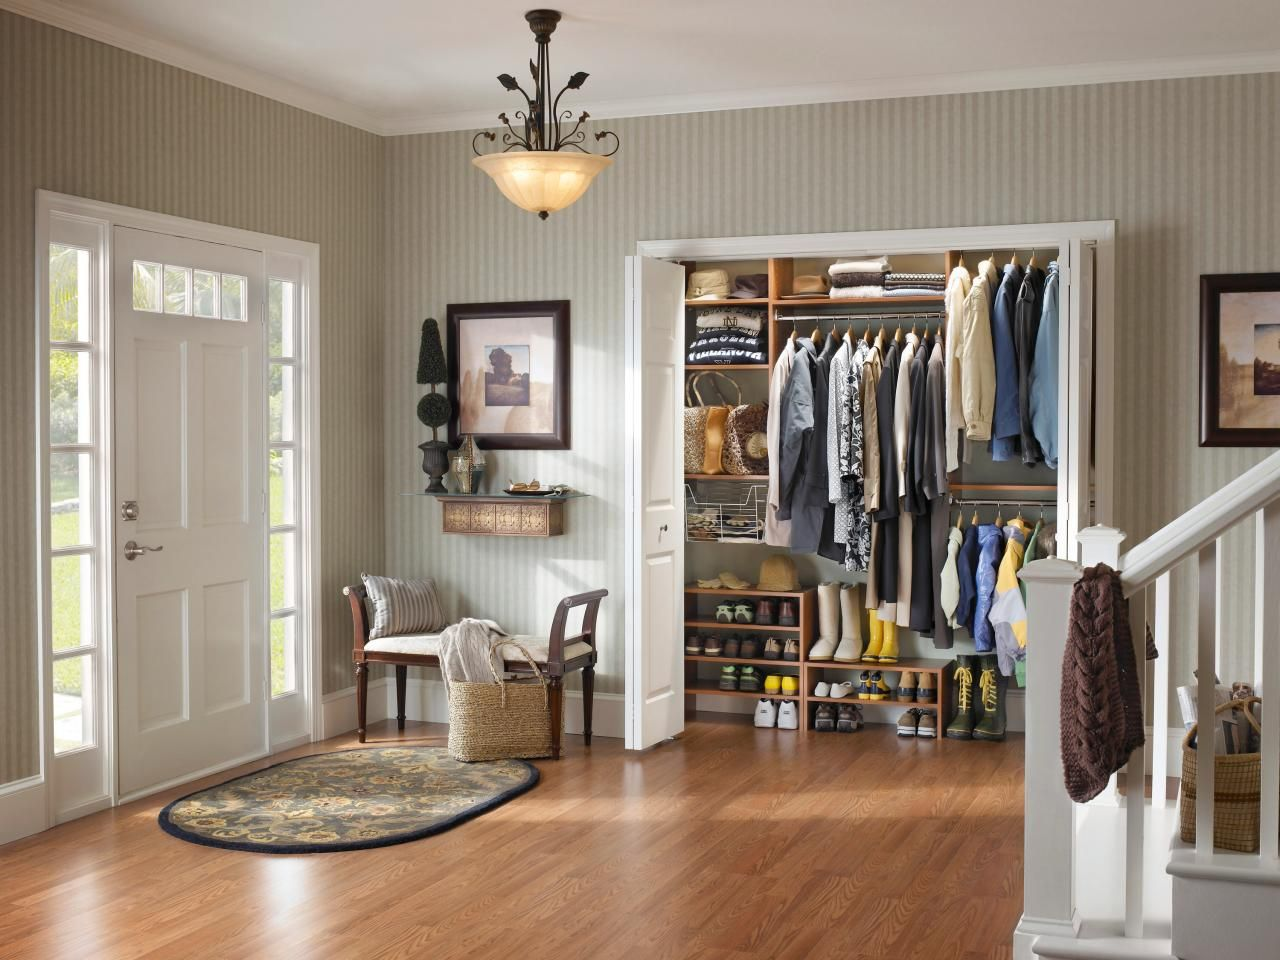 Living Room Closet Design Prepossessing 10 Stylish Reachin Closets  Hgtv Foyers And Clutter Design Decoration